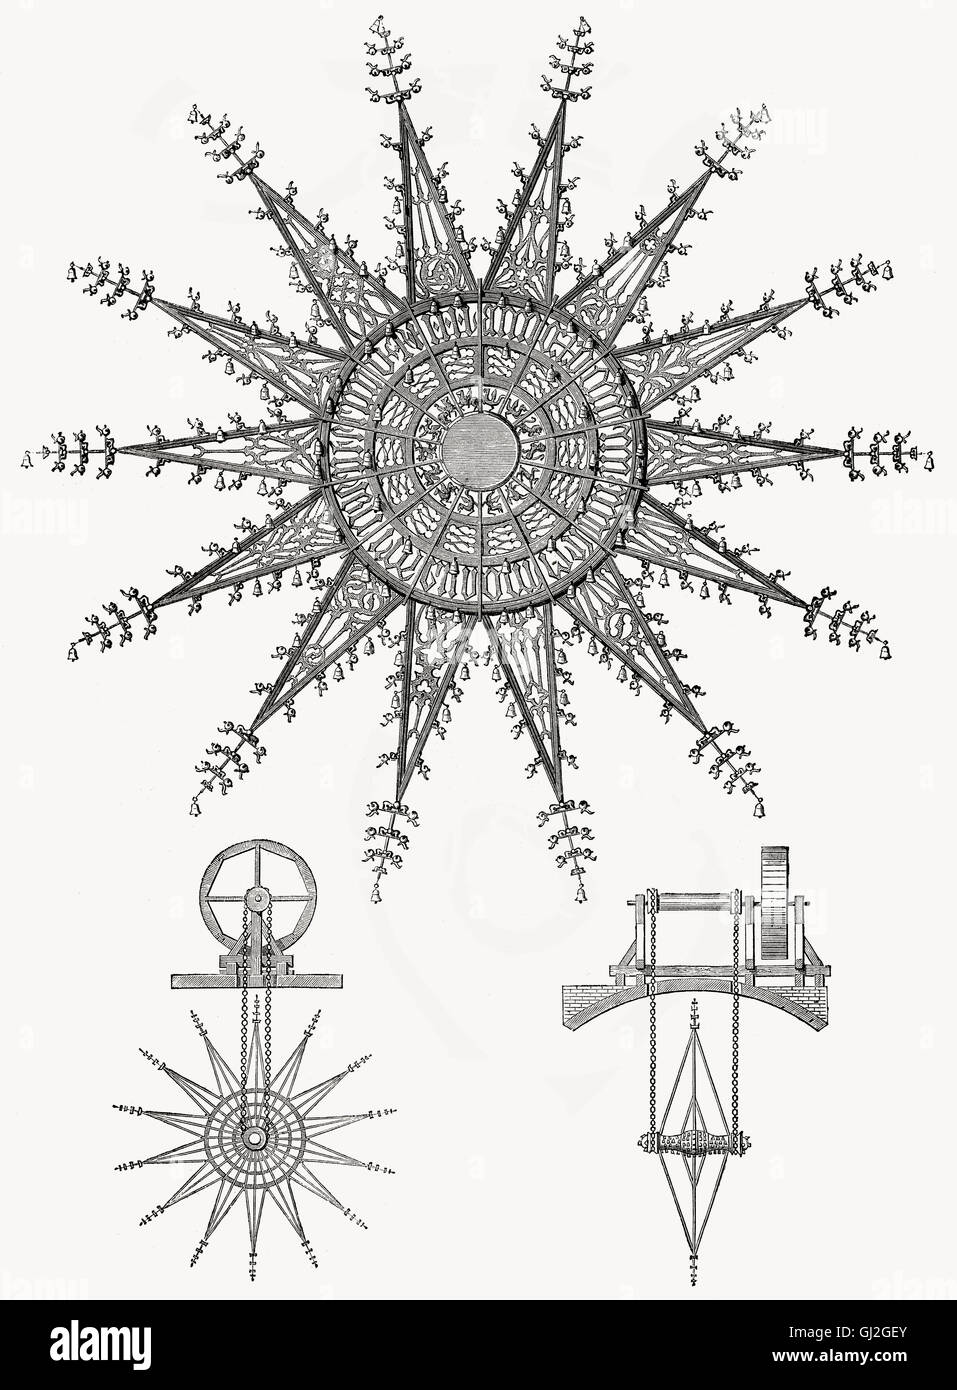 A Bell Wheel, Music theory by  Athanasius Kircher, 1602- 1680, a 17th-century German Jesuit scholar and polymath - Stock Image